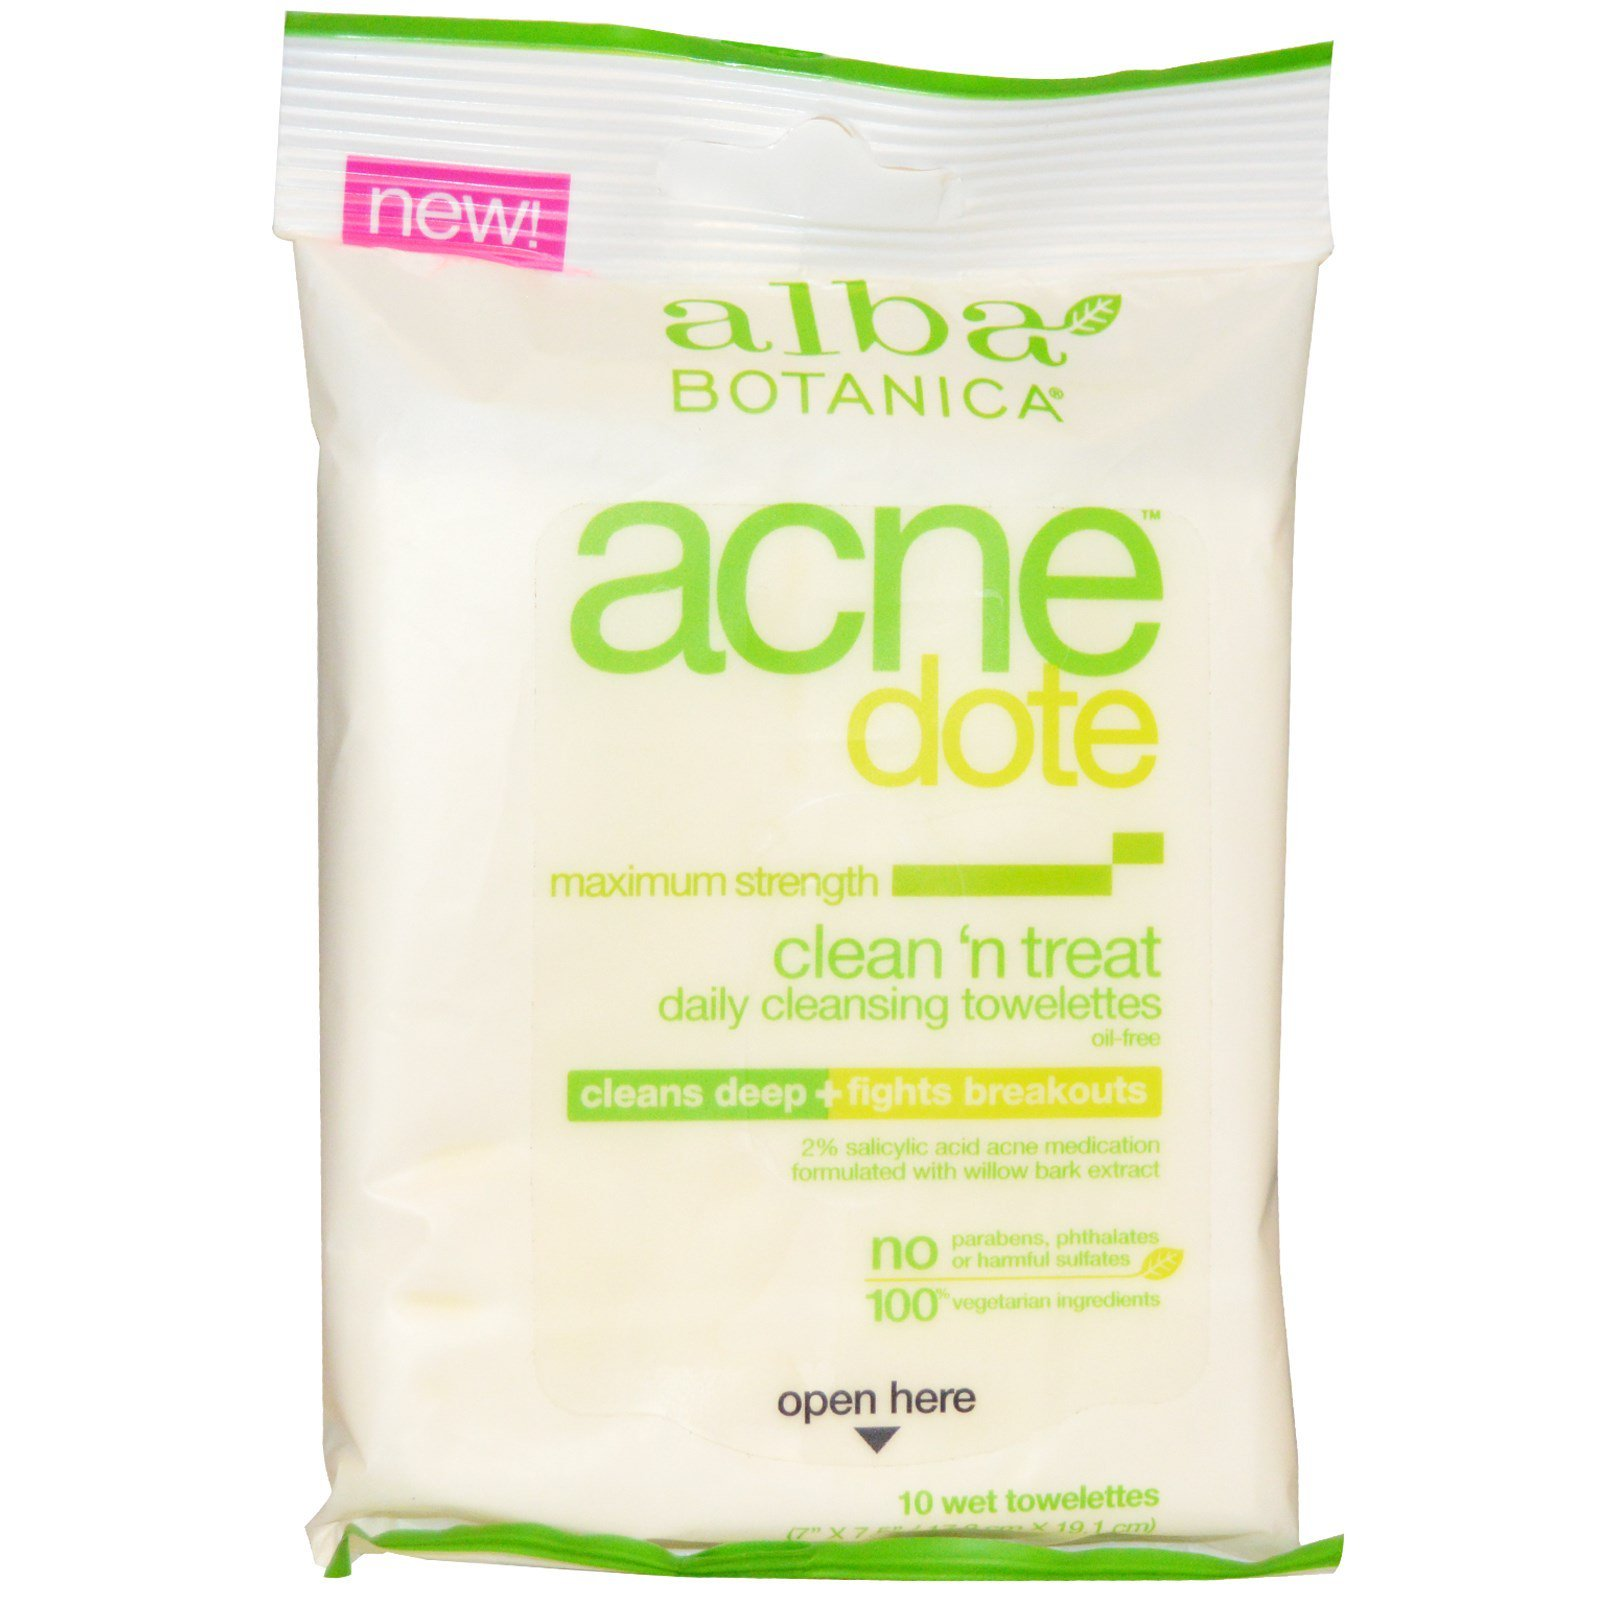 Alba Botanica Acnedote Clean n Treat Daily Cleansing Towelettes 30 ea (Pack of 2) Pevonia Botanica - Balancing Combination Skin Cream (New Packaging, Salon Size) -200g/6.8oz